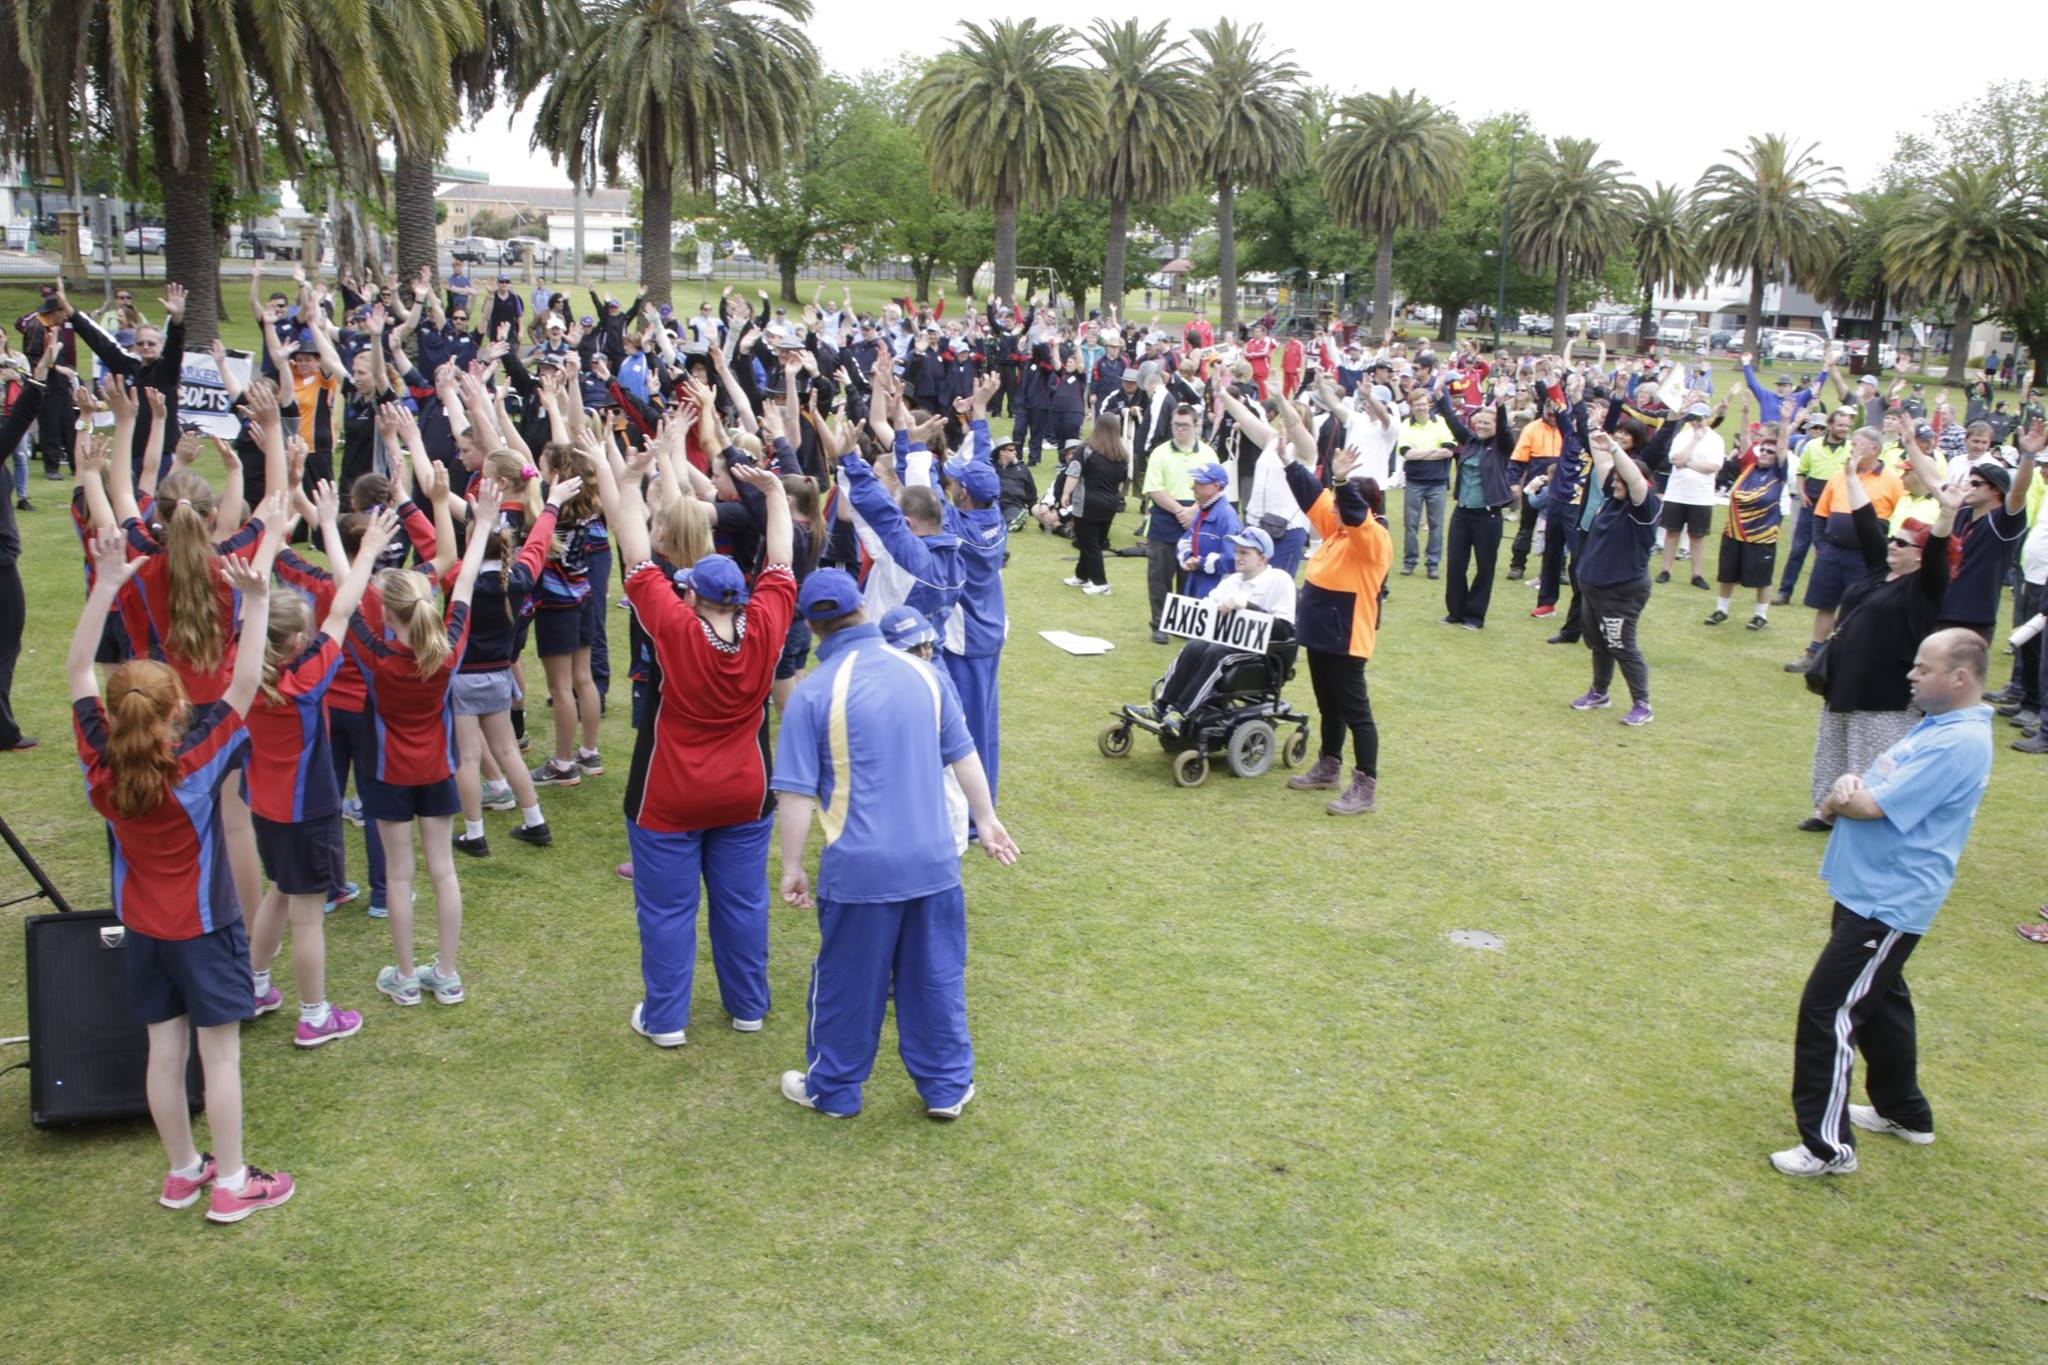 Annual week long sporting event for people with disabilities. -